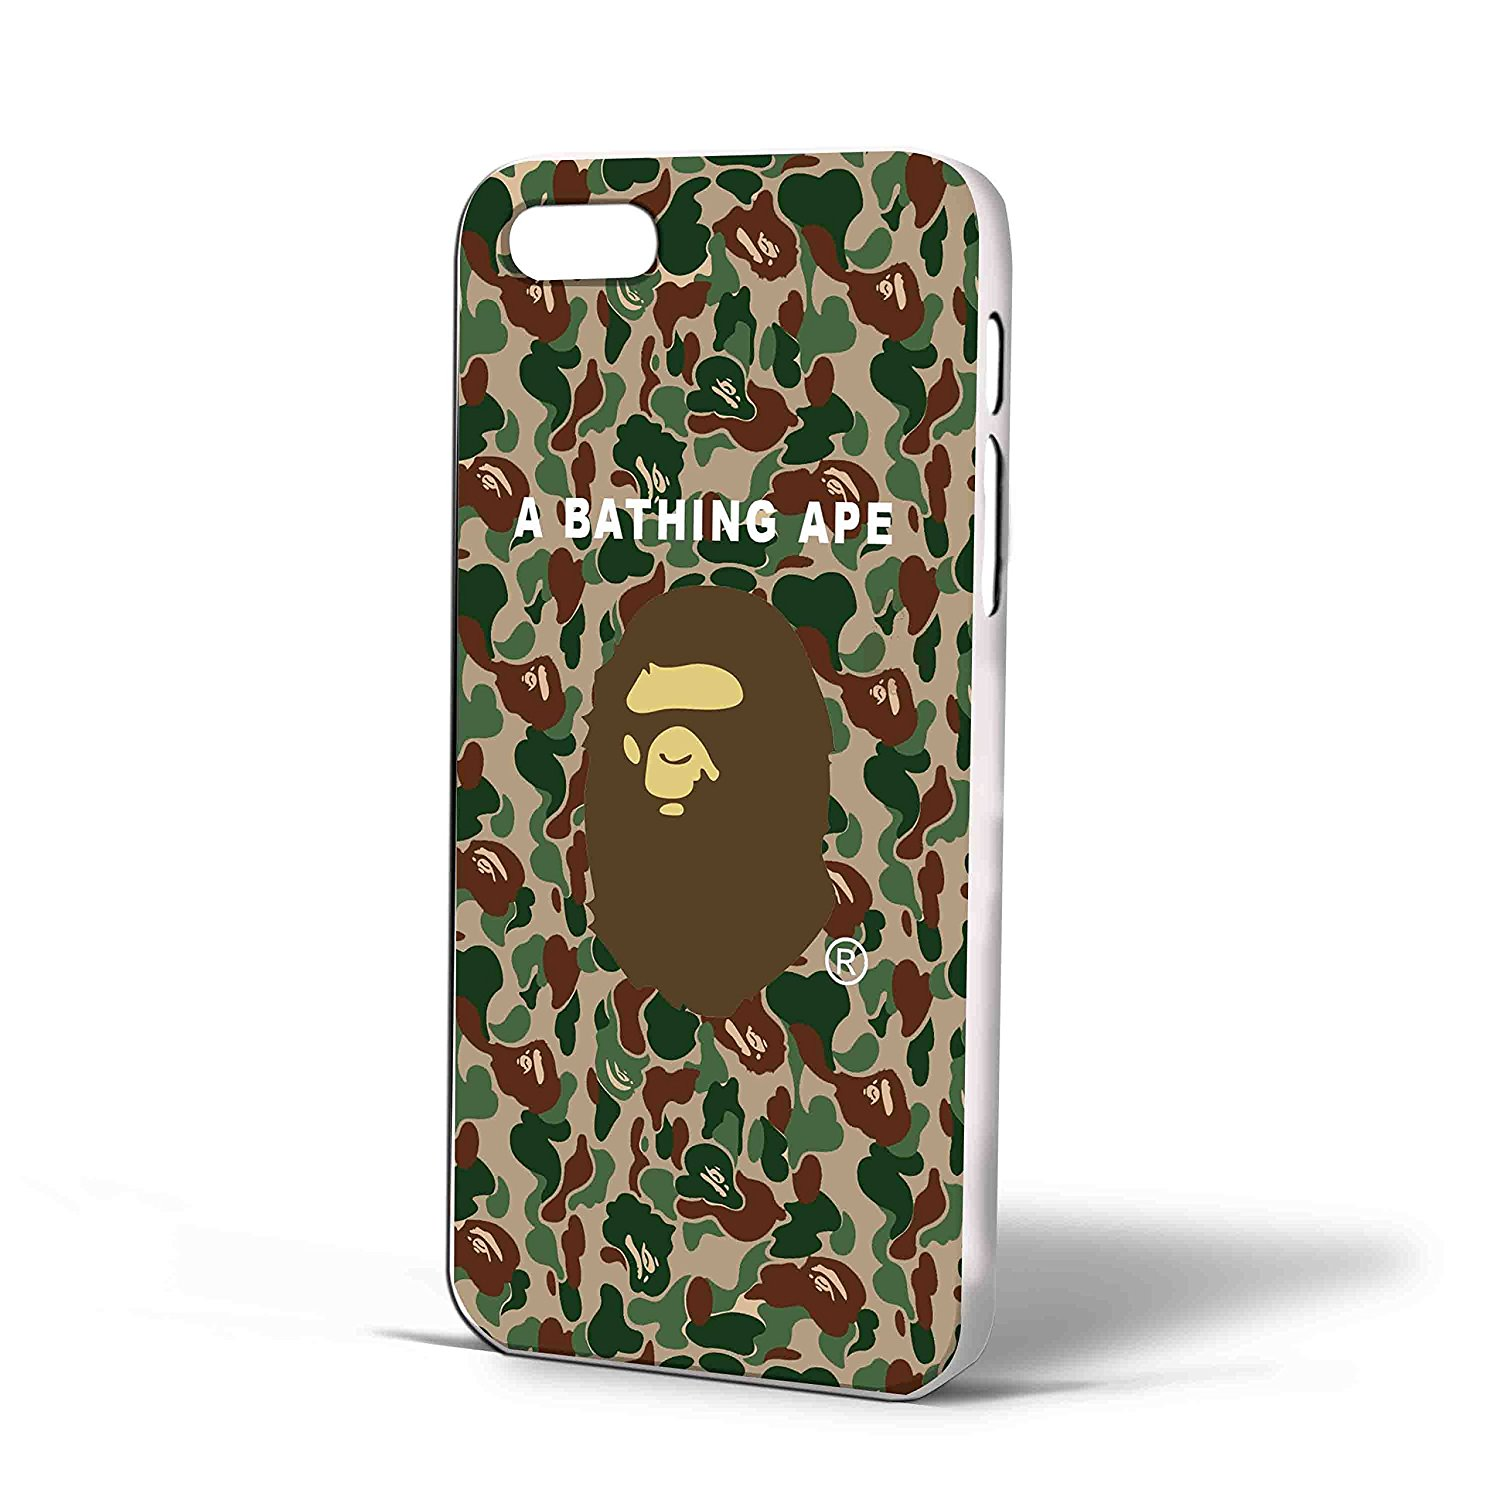 Ganma Bape a Bathing Ape Amry Texture Case For iPhone Case (Case For iPhone 6s White)